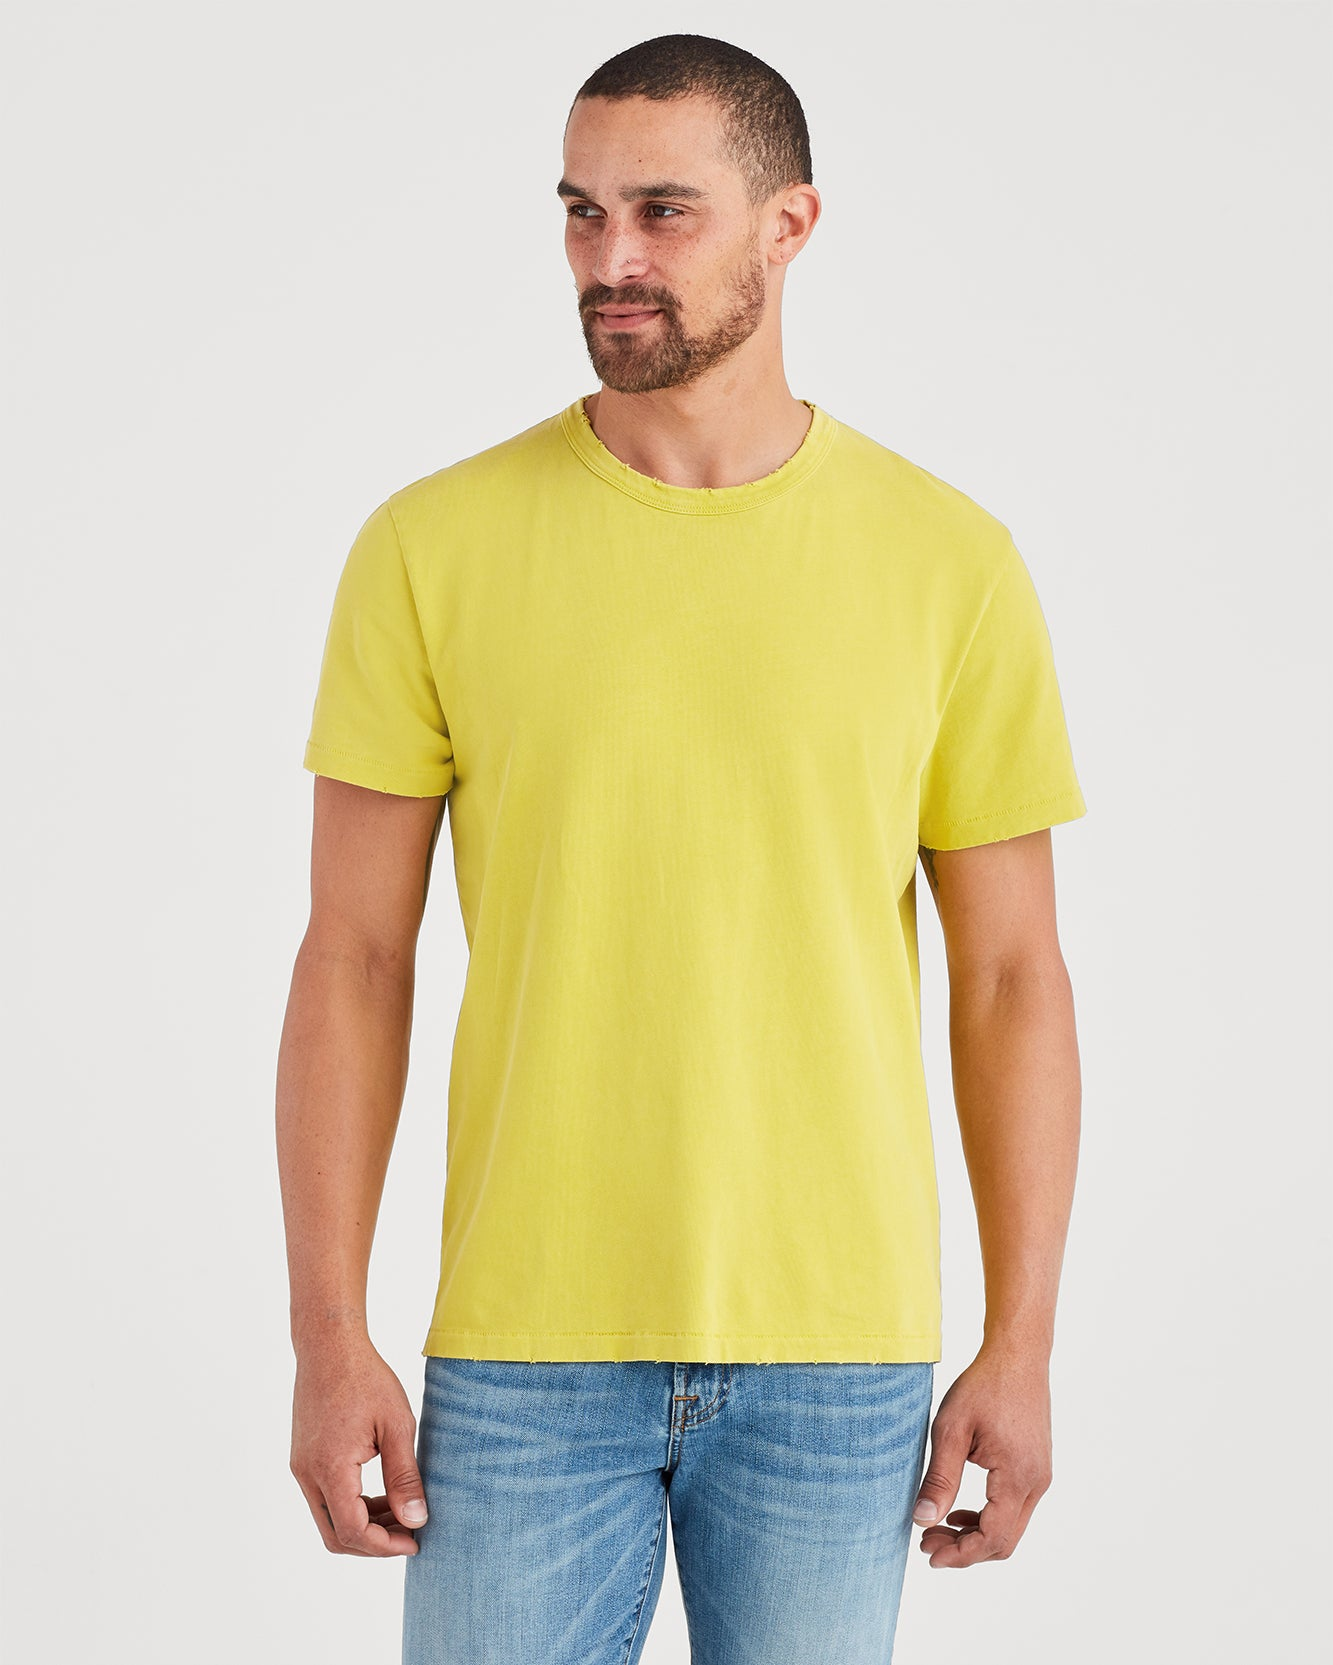 Image of Short Sleeve Vintage Tee in Sulpher Yellow